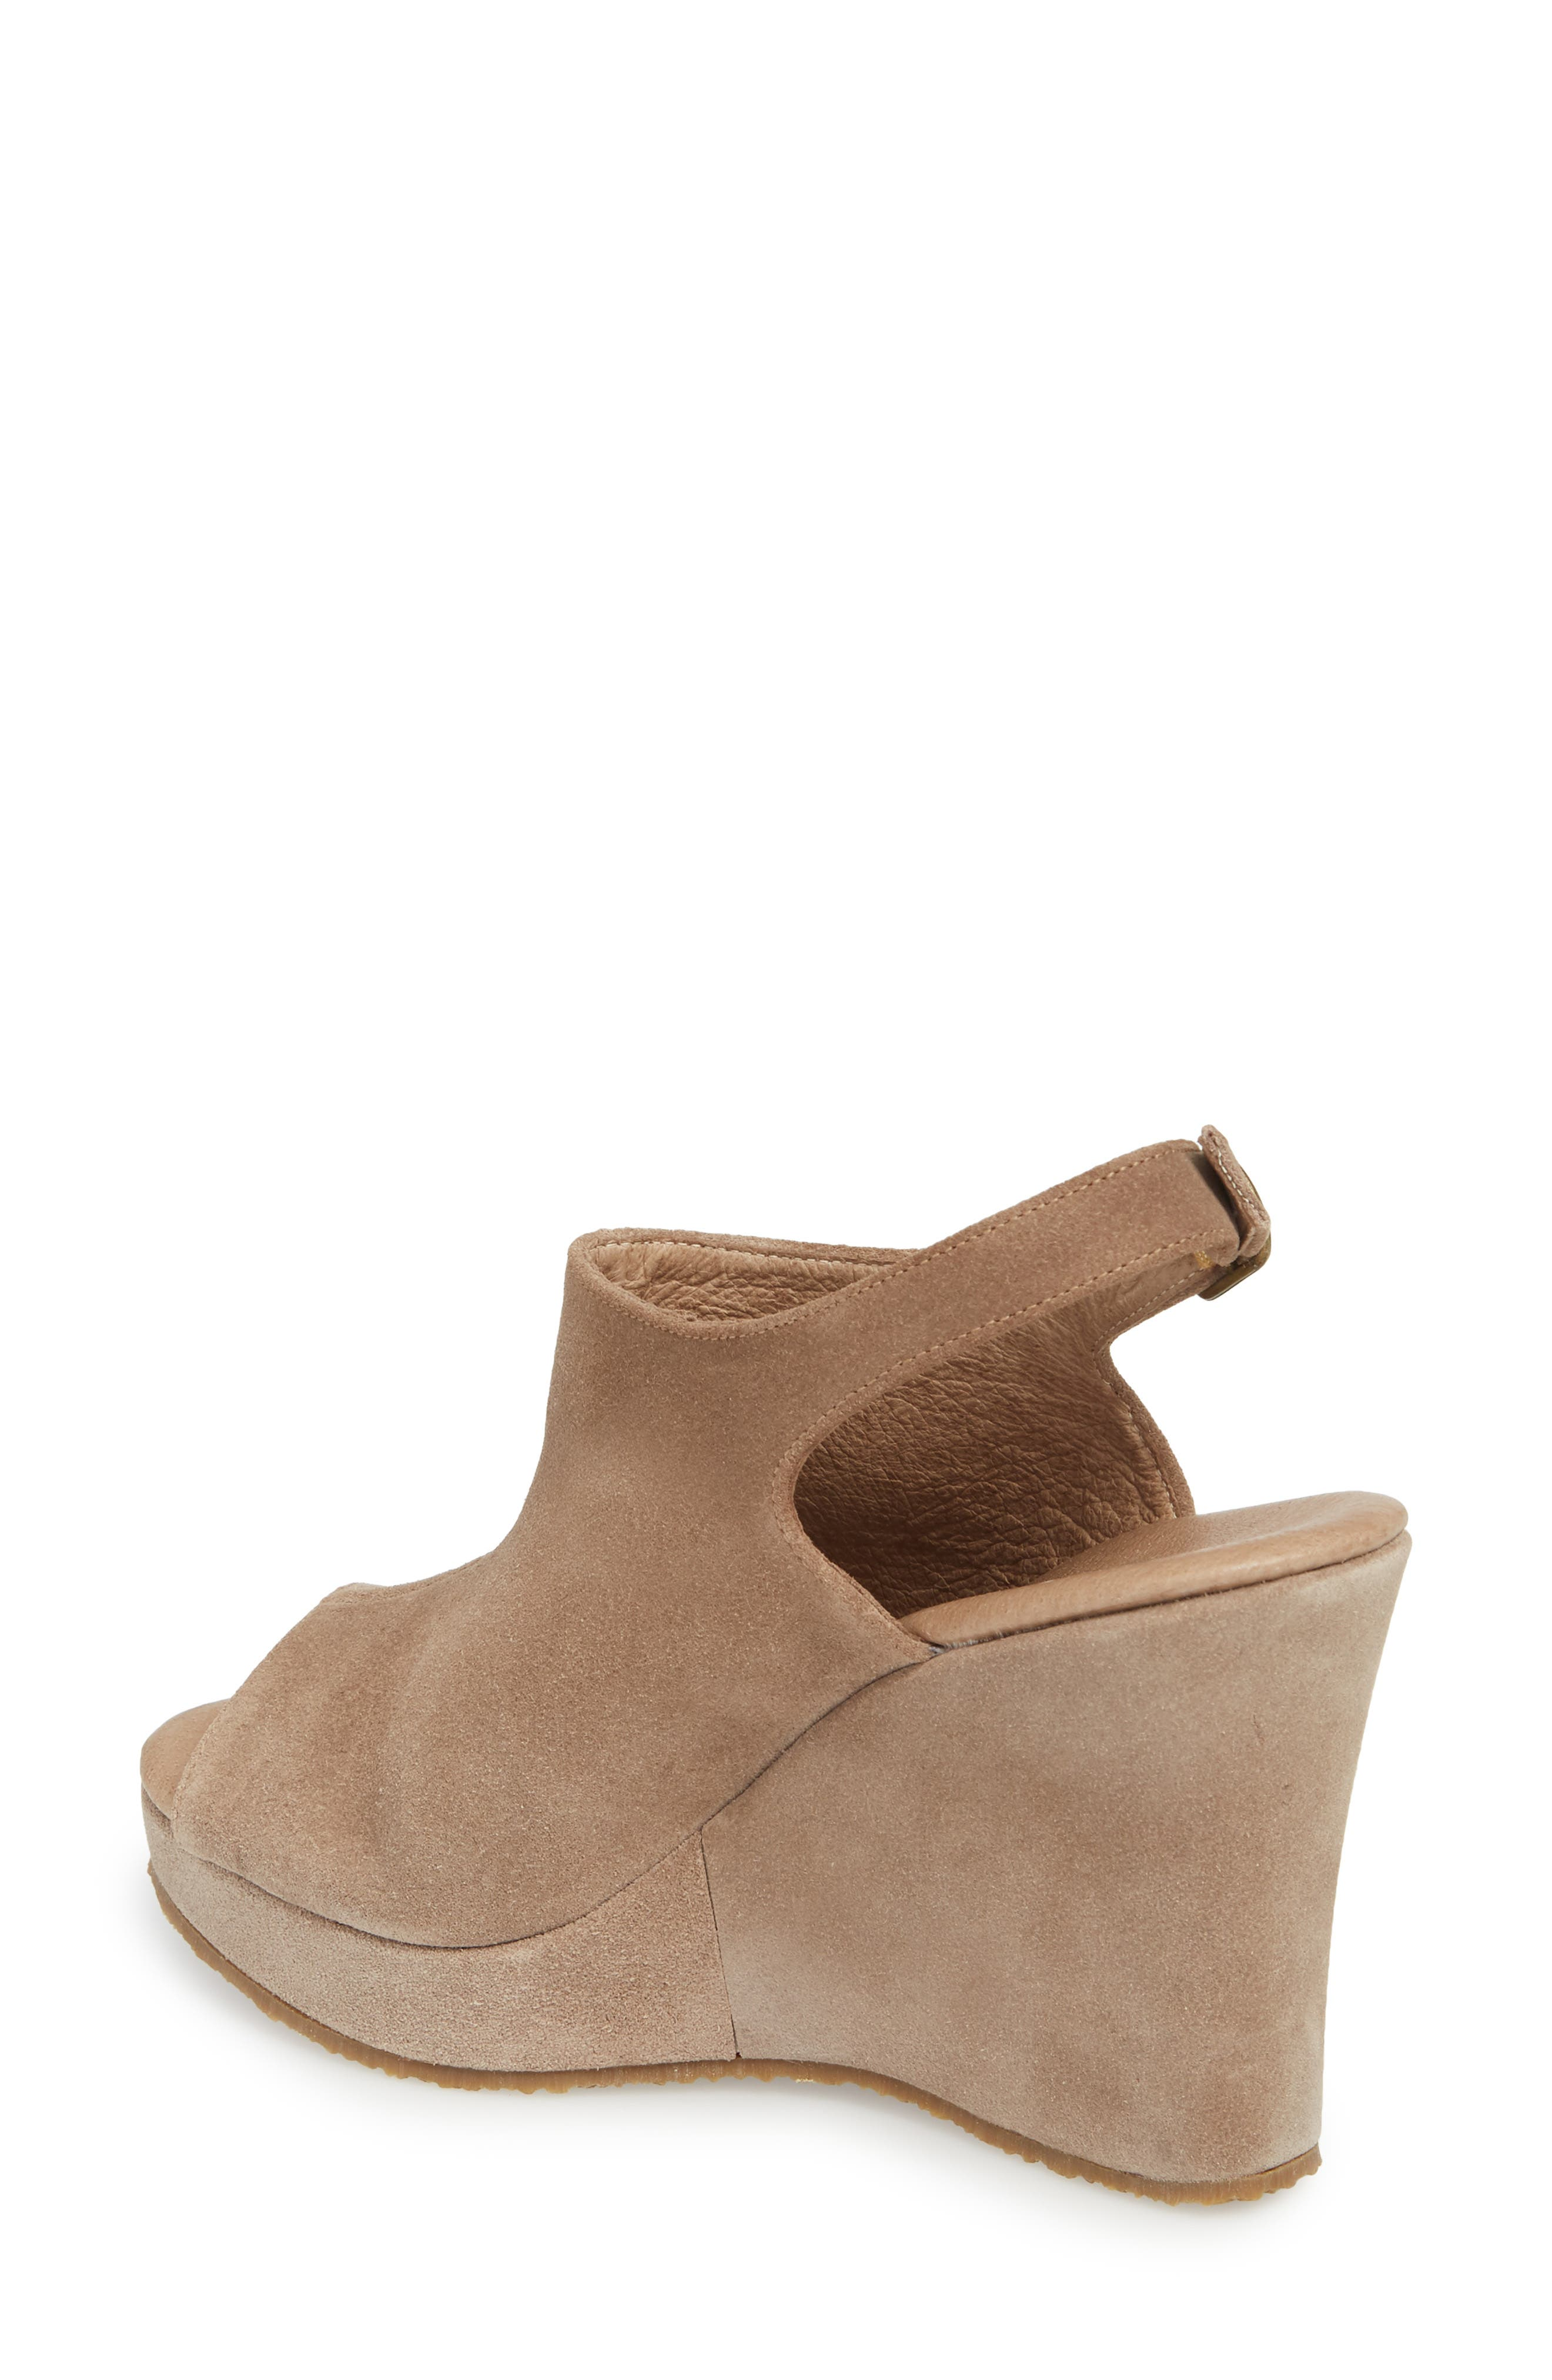 'Wellesley' Sandal,                             Alternate thumbnail 2, color,                             Taupe Suede